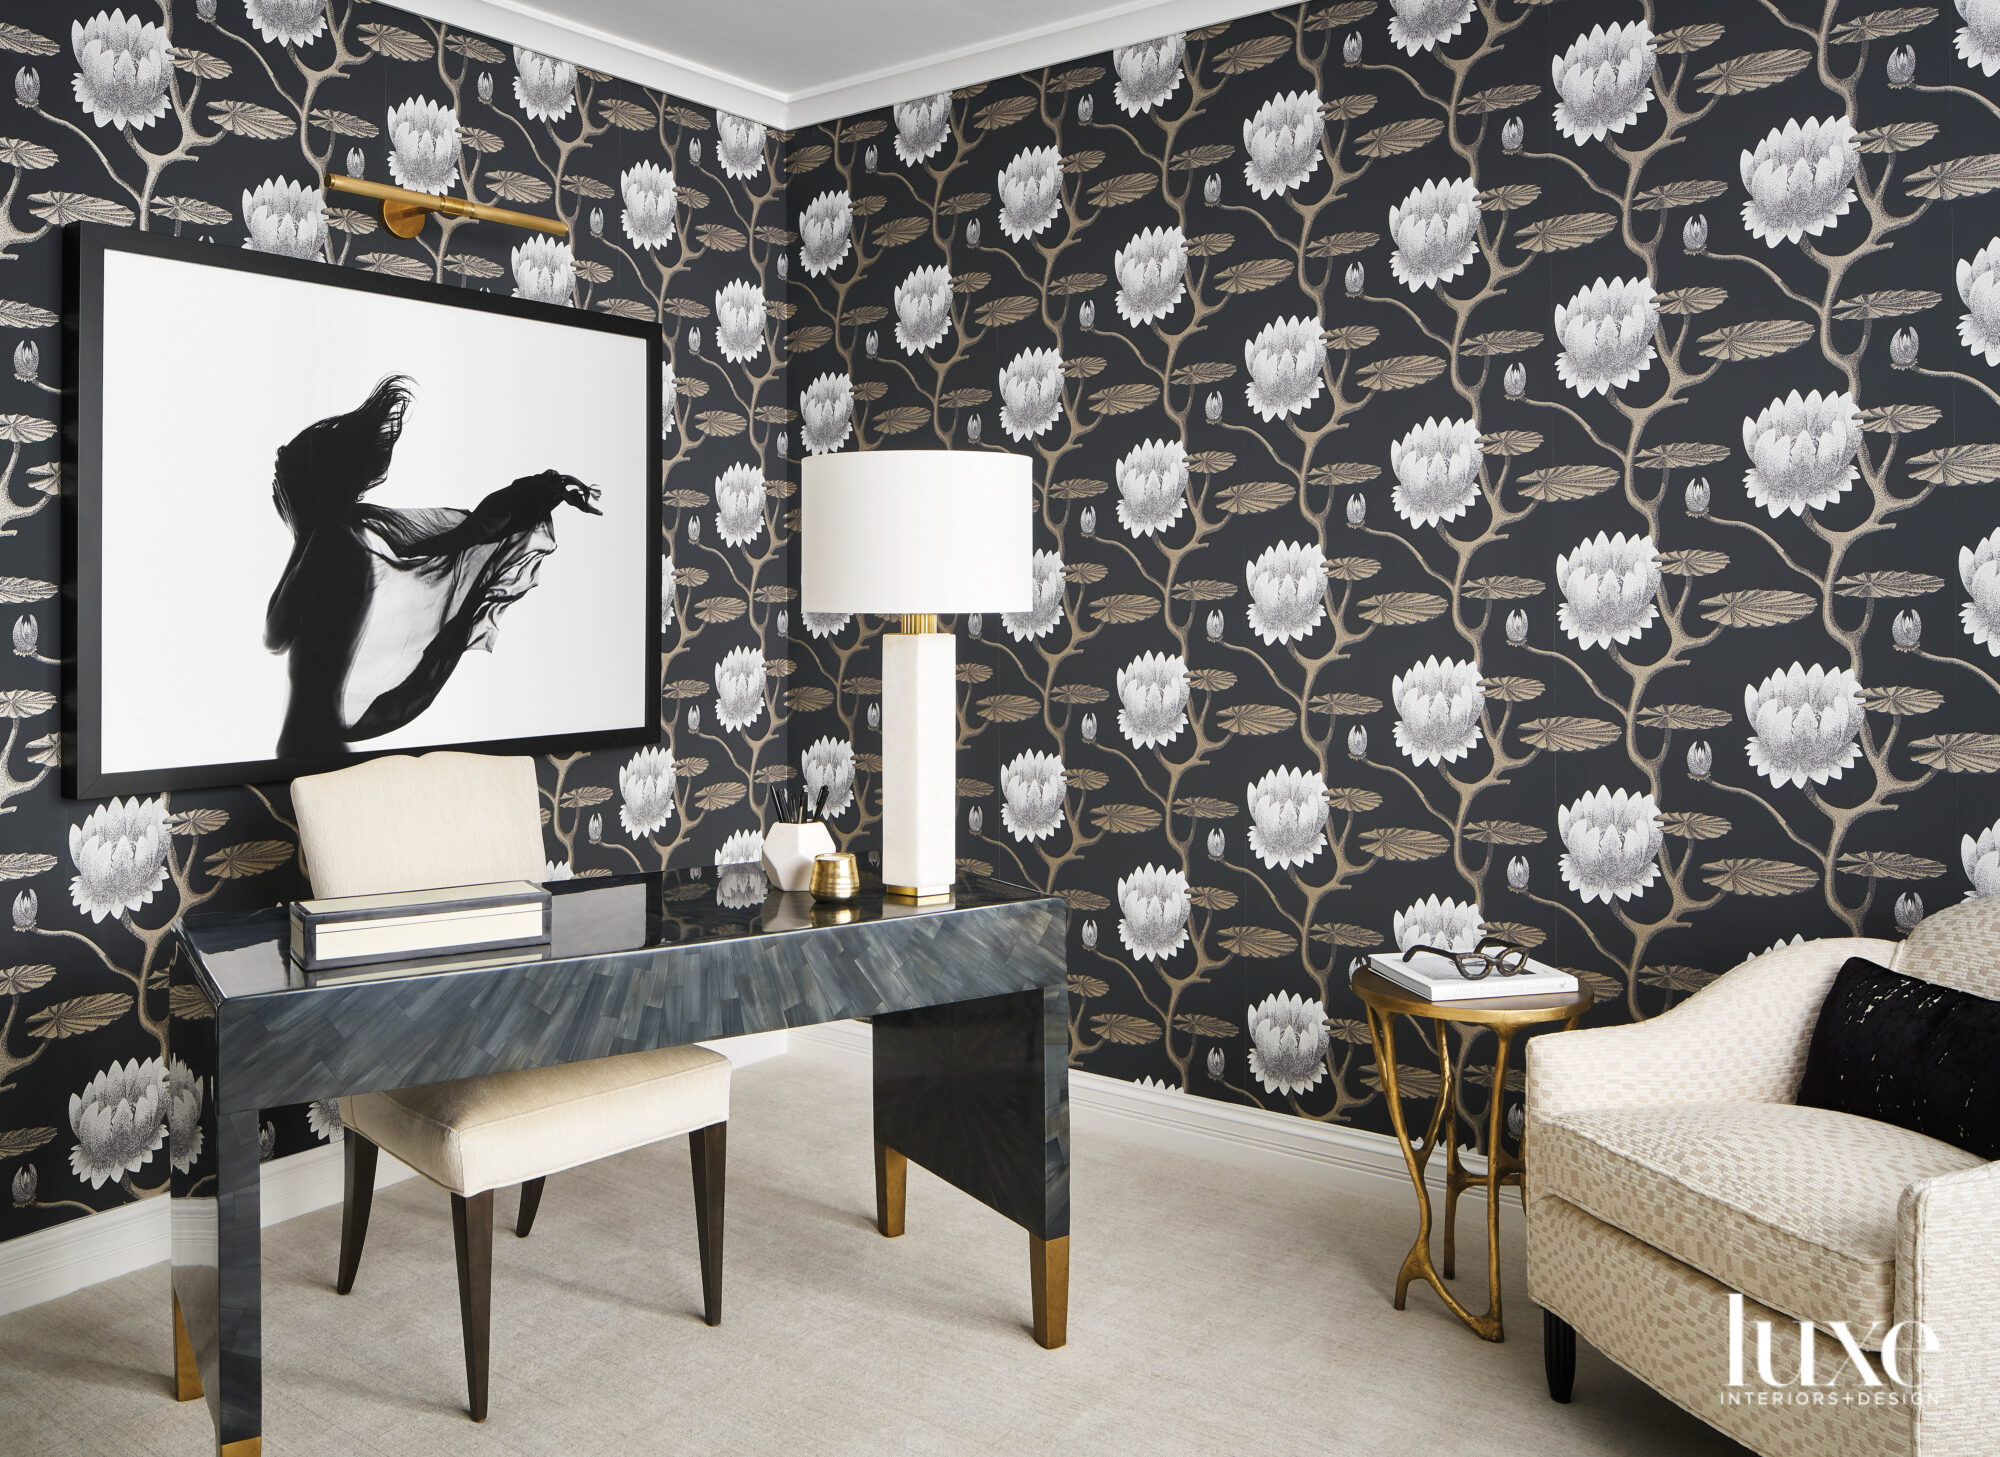 A home office has a dramatic floral wallpaper. A black-and-white photograph hangs behind the desk.